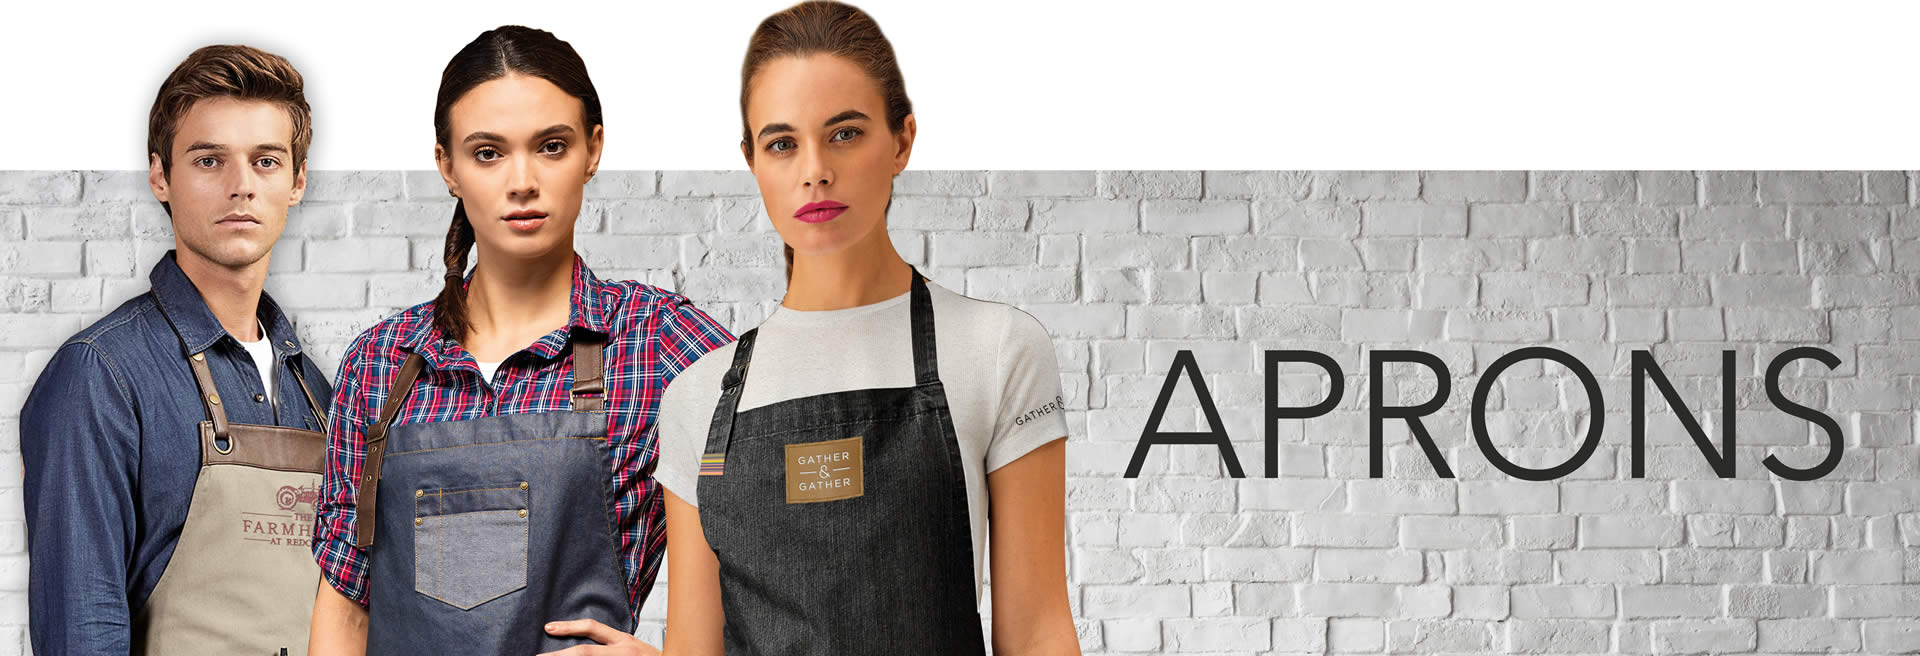 Best Selling Aprons - Staff Uniforms